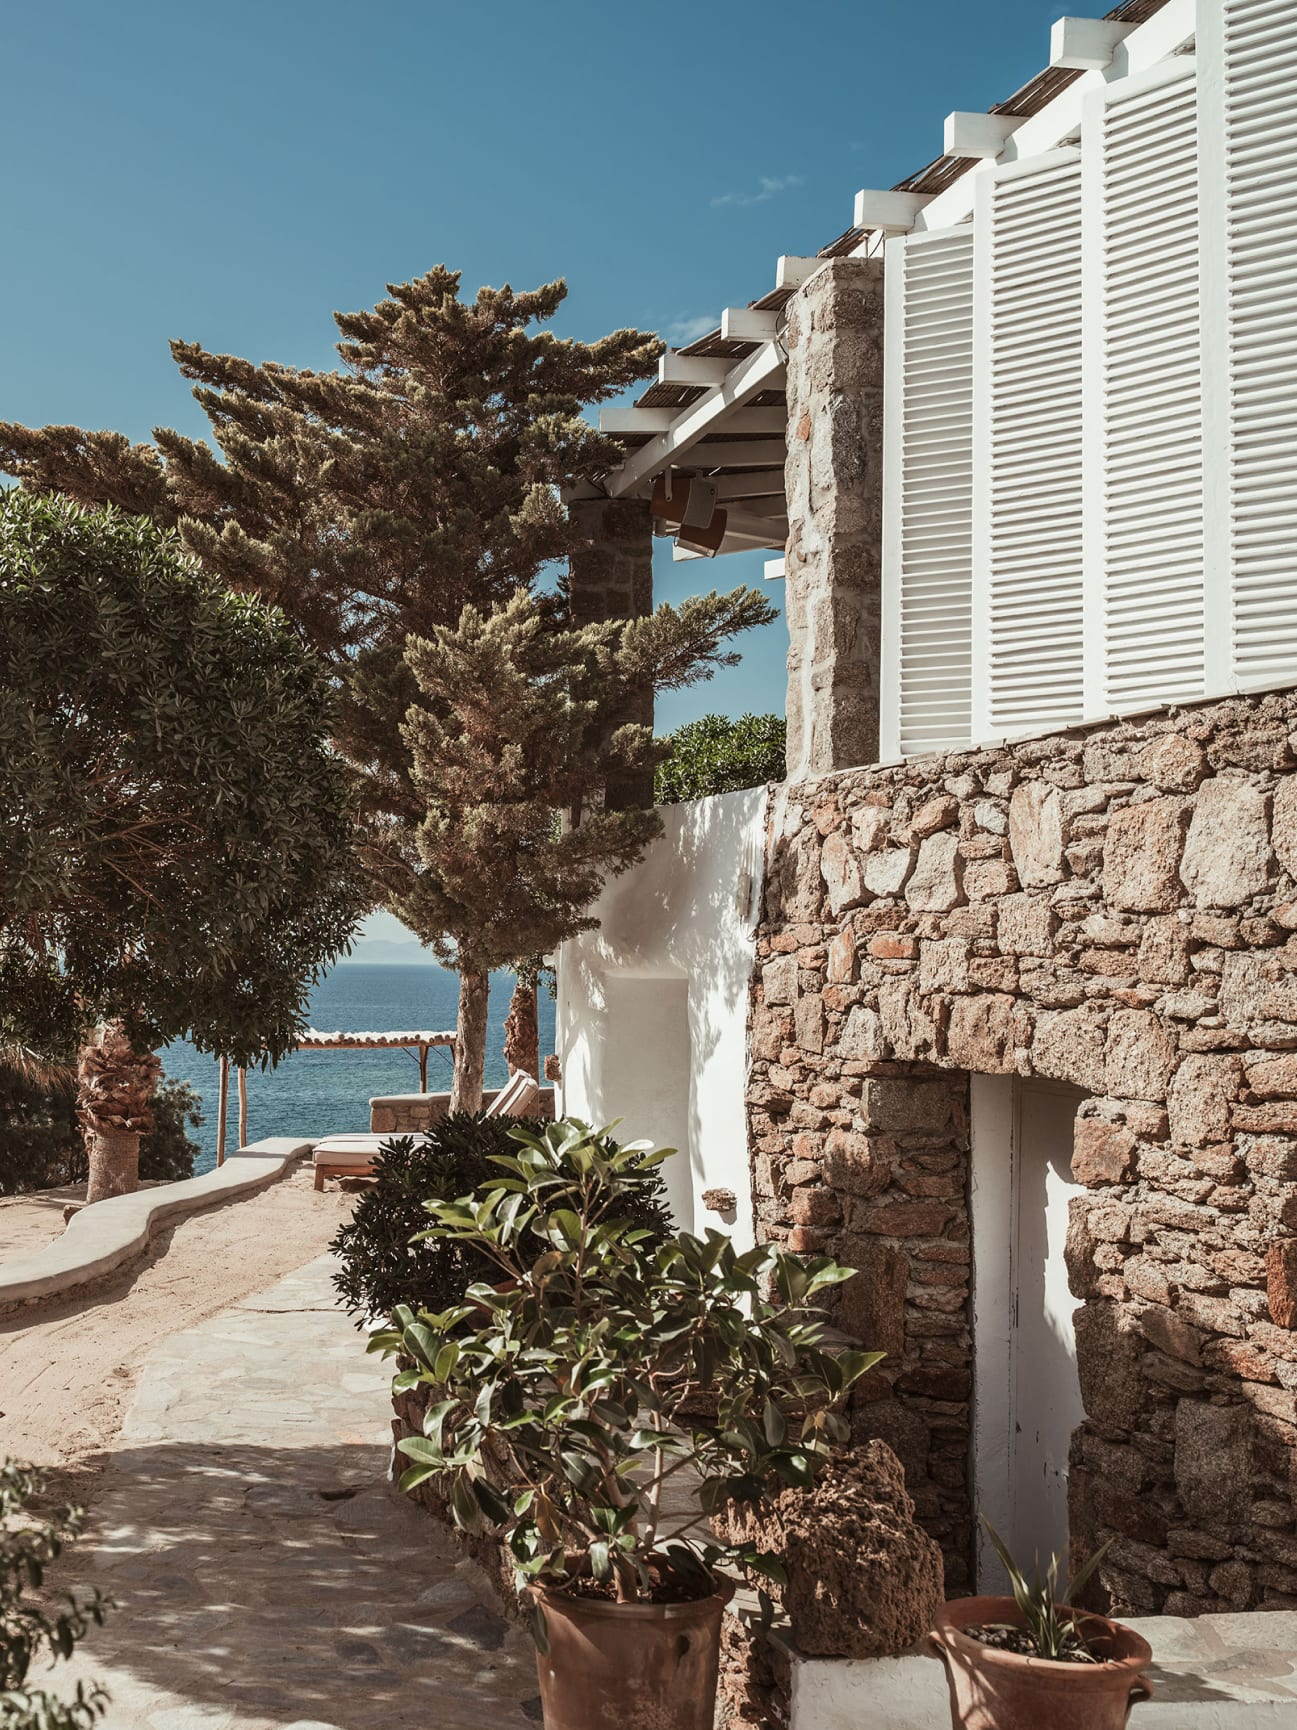 The exterior of a building with trees and the sea in the background.